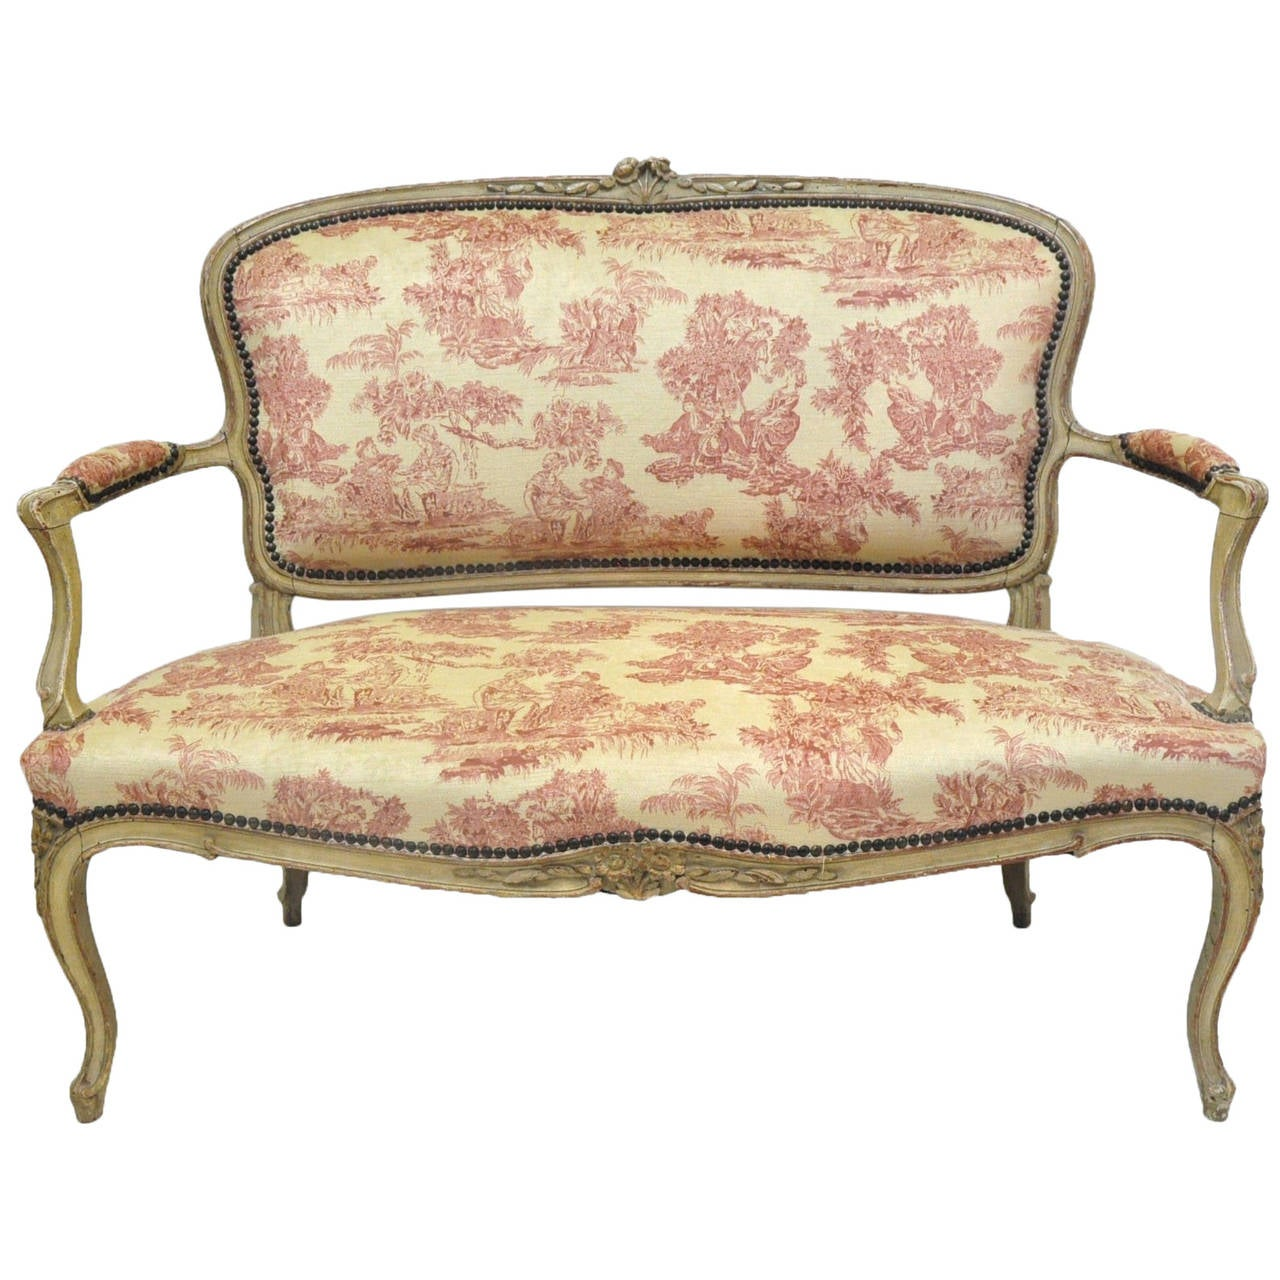 19th Century French Louis XV Carved Painted Two-Seat Settee with Vintage Fabric